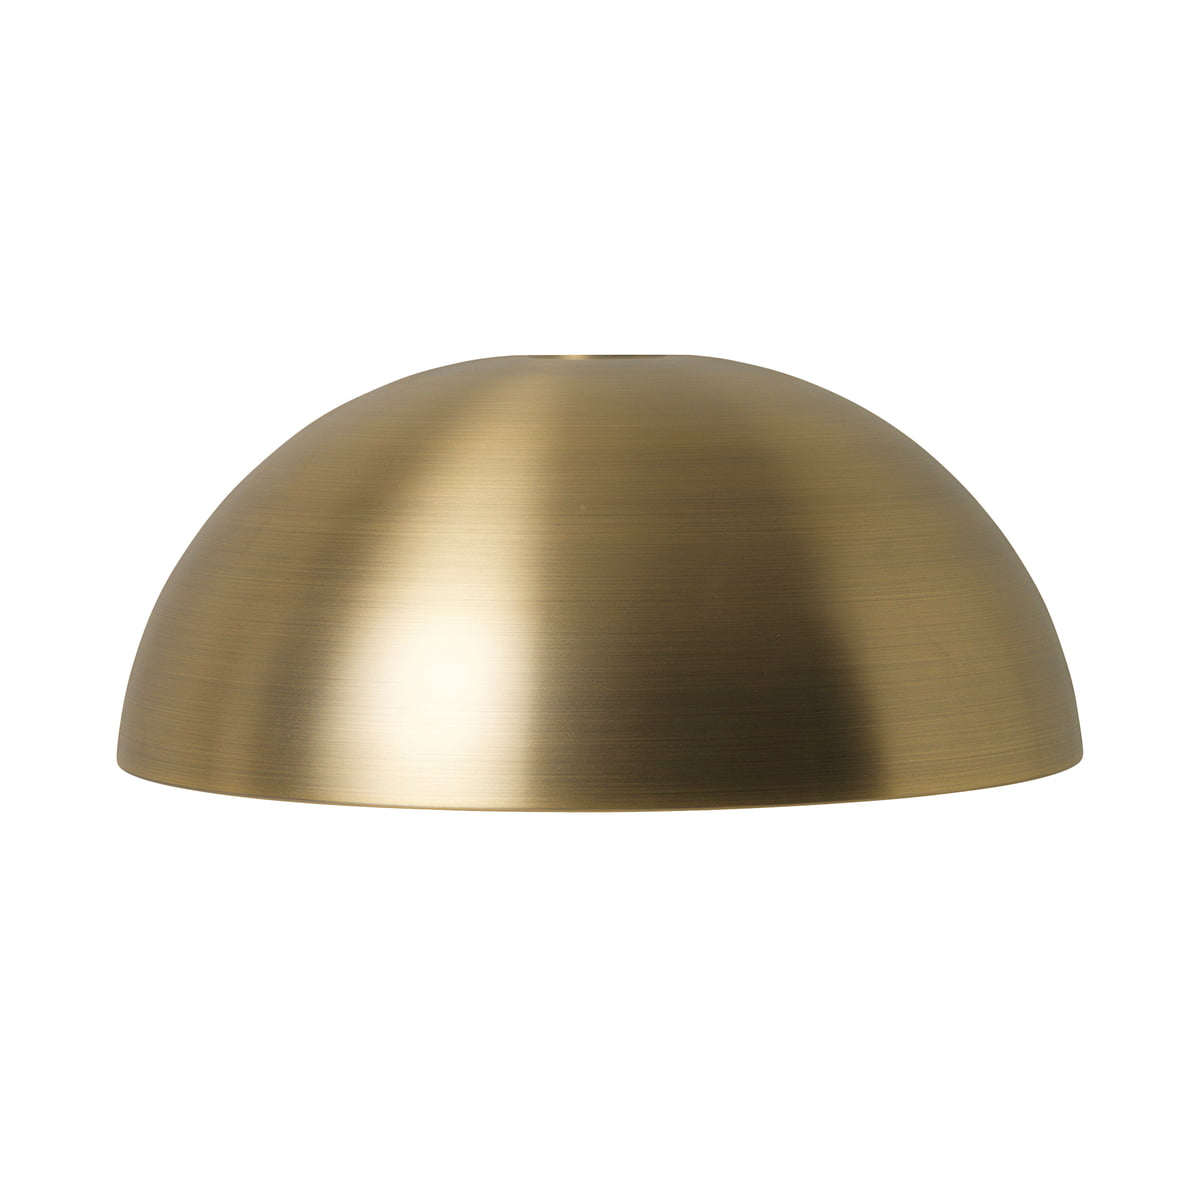 ferm Living - Dome Shade Lampenschirm, Messing | Lampen > Lampenschirme und Füsse | ferm living